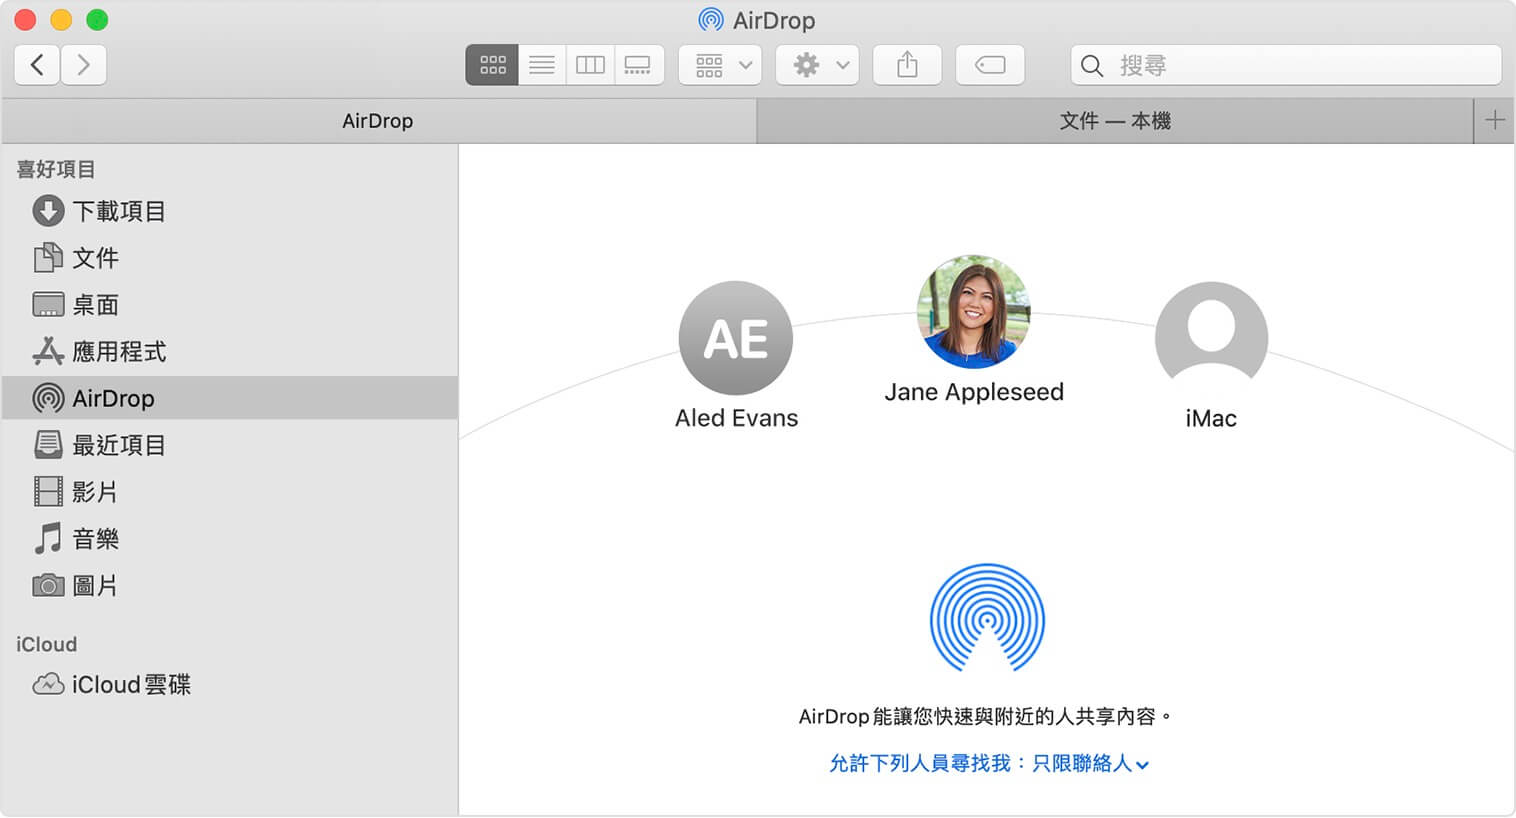 AirDrop傳送照片